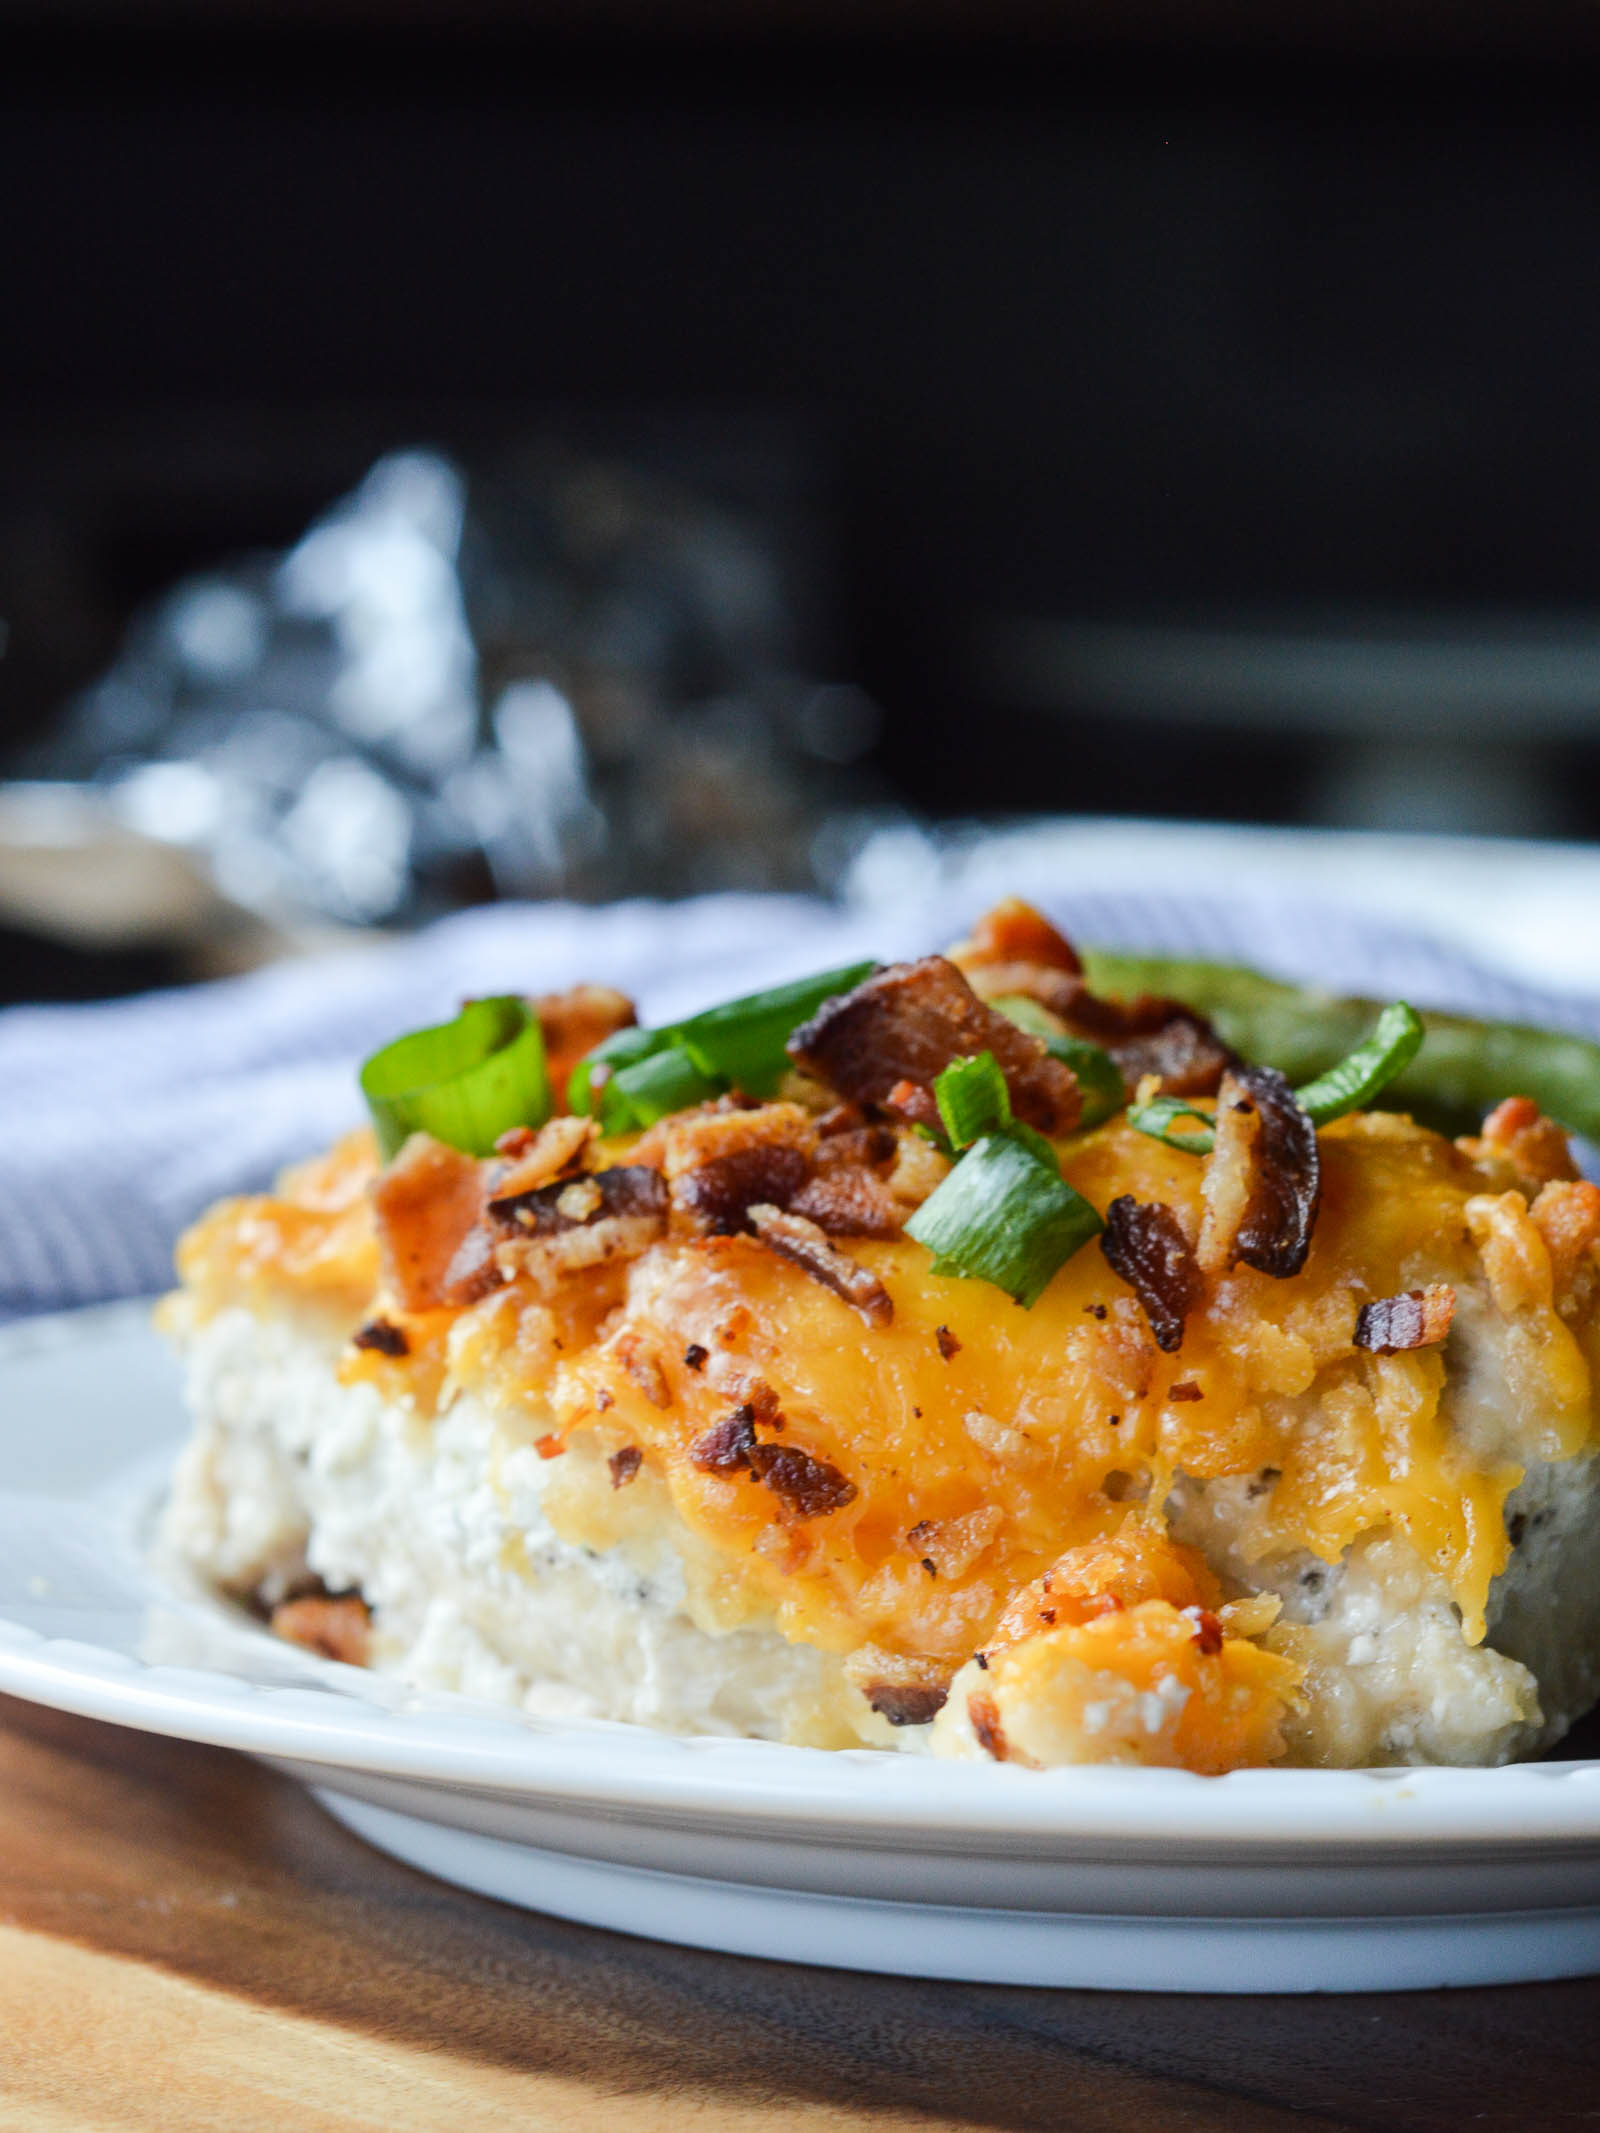 A dinner plate piled with baked chicken breast smothered in seasoned sour cream, melty cheddar cheese, chopped bacon, and chopped green onions